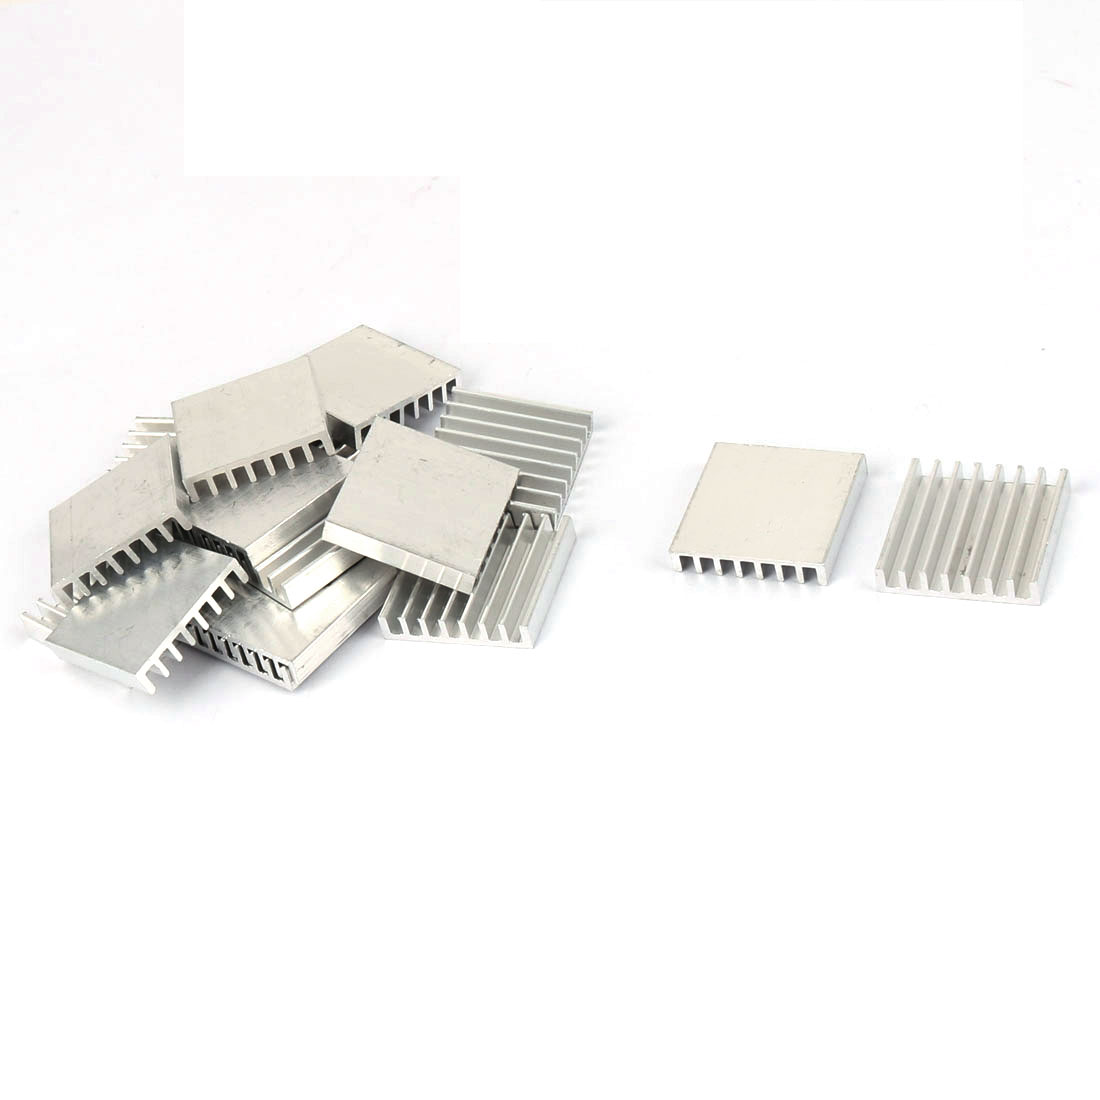 25mmx25mmx5mm Silver Tone Aluminium Power Amplifier Heat Sink Radiator Heatsink 16pcs